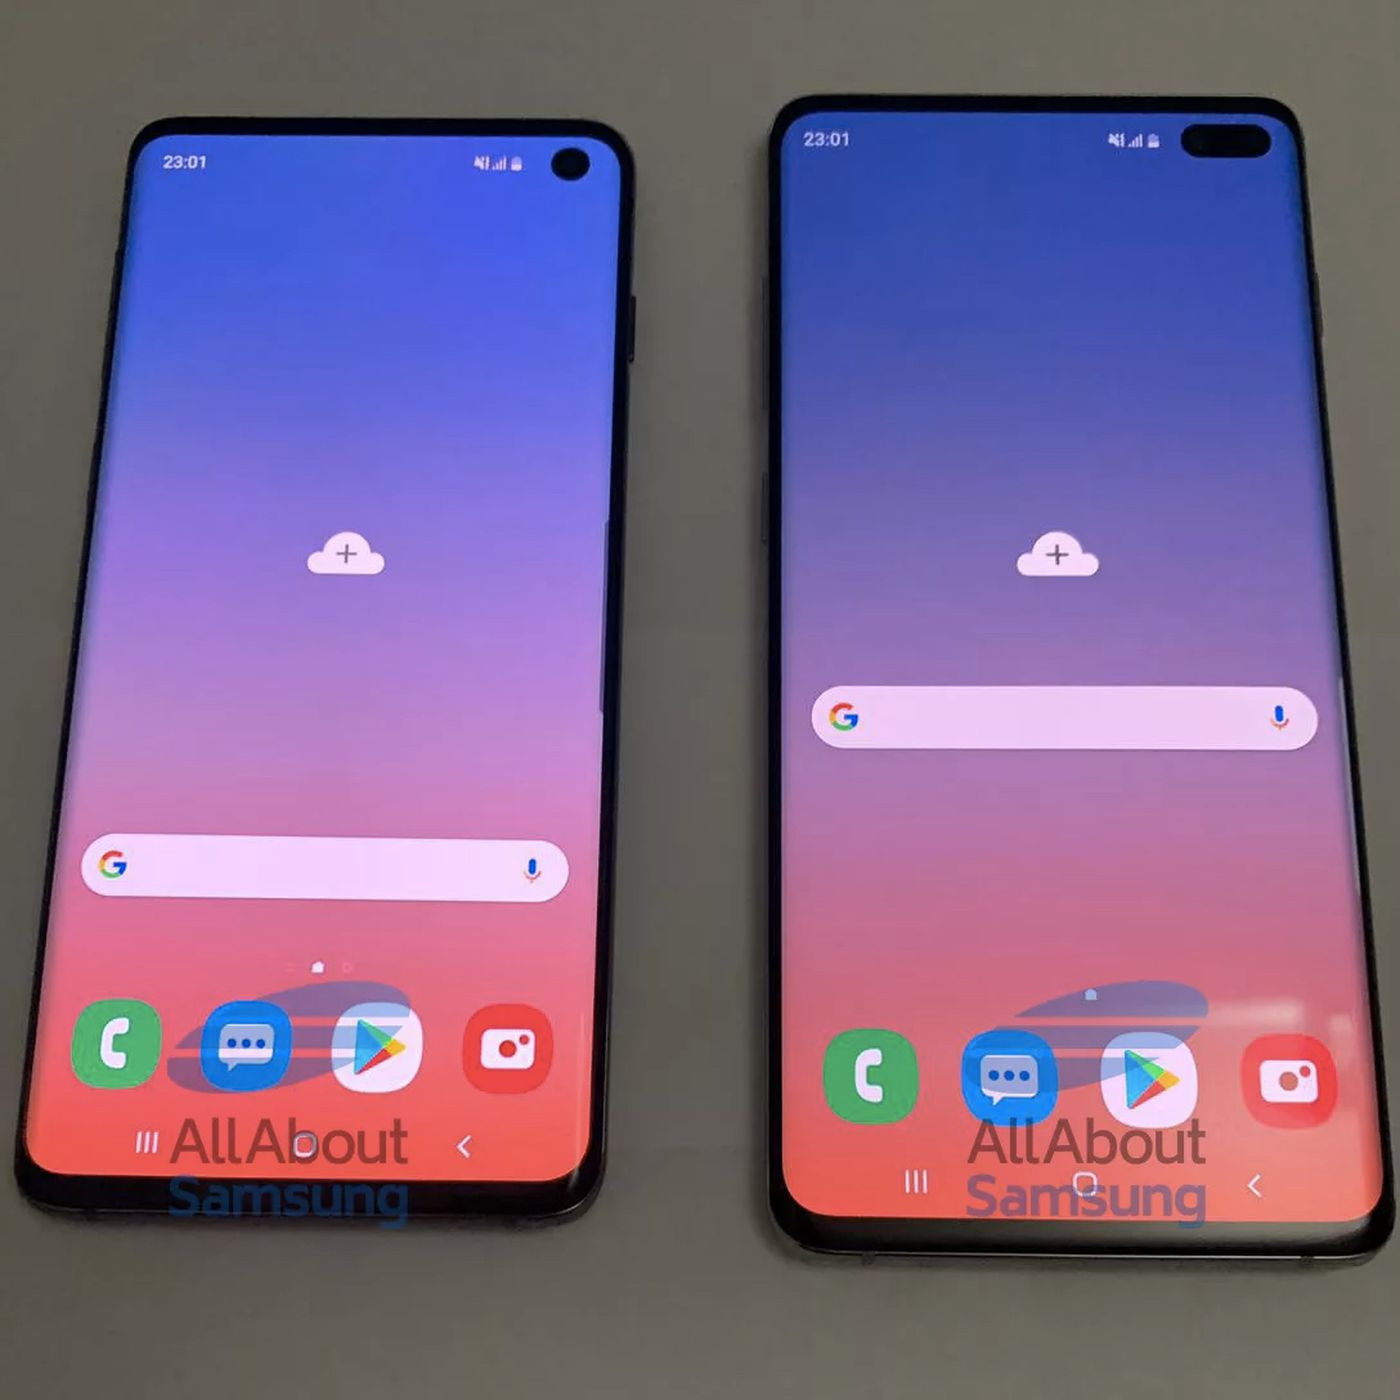 Samsung's Galaxy S10 will be one of the first Wi-Fi 6 phones